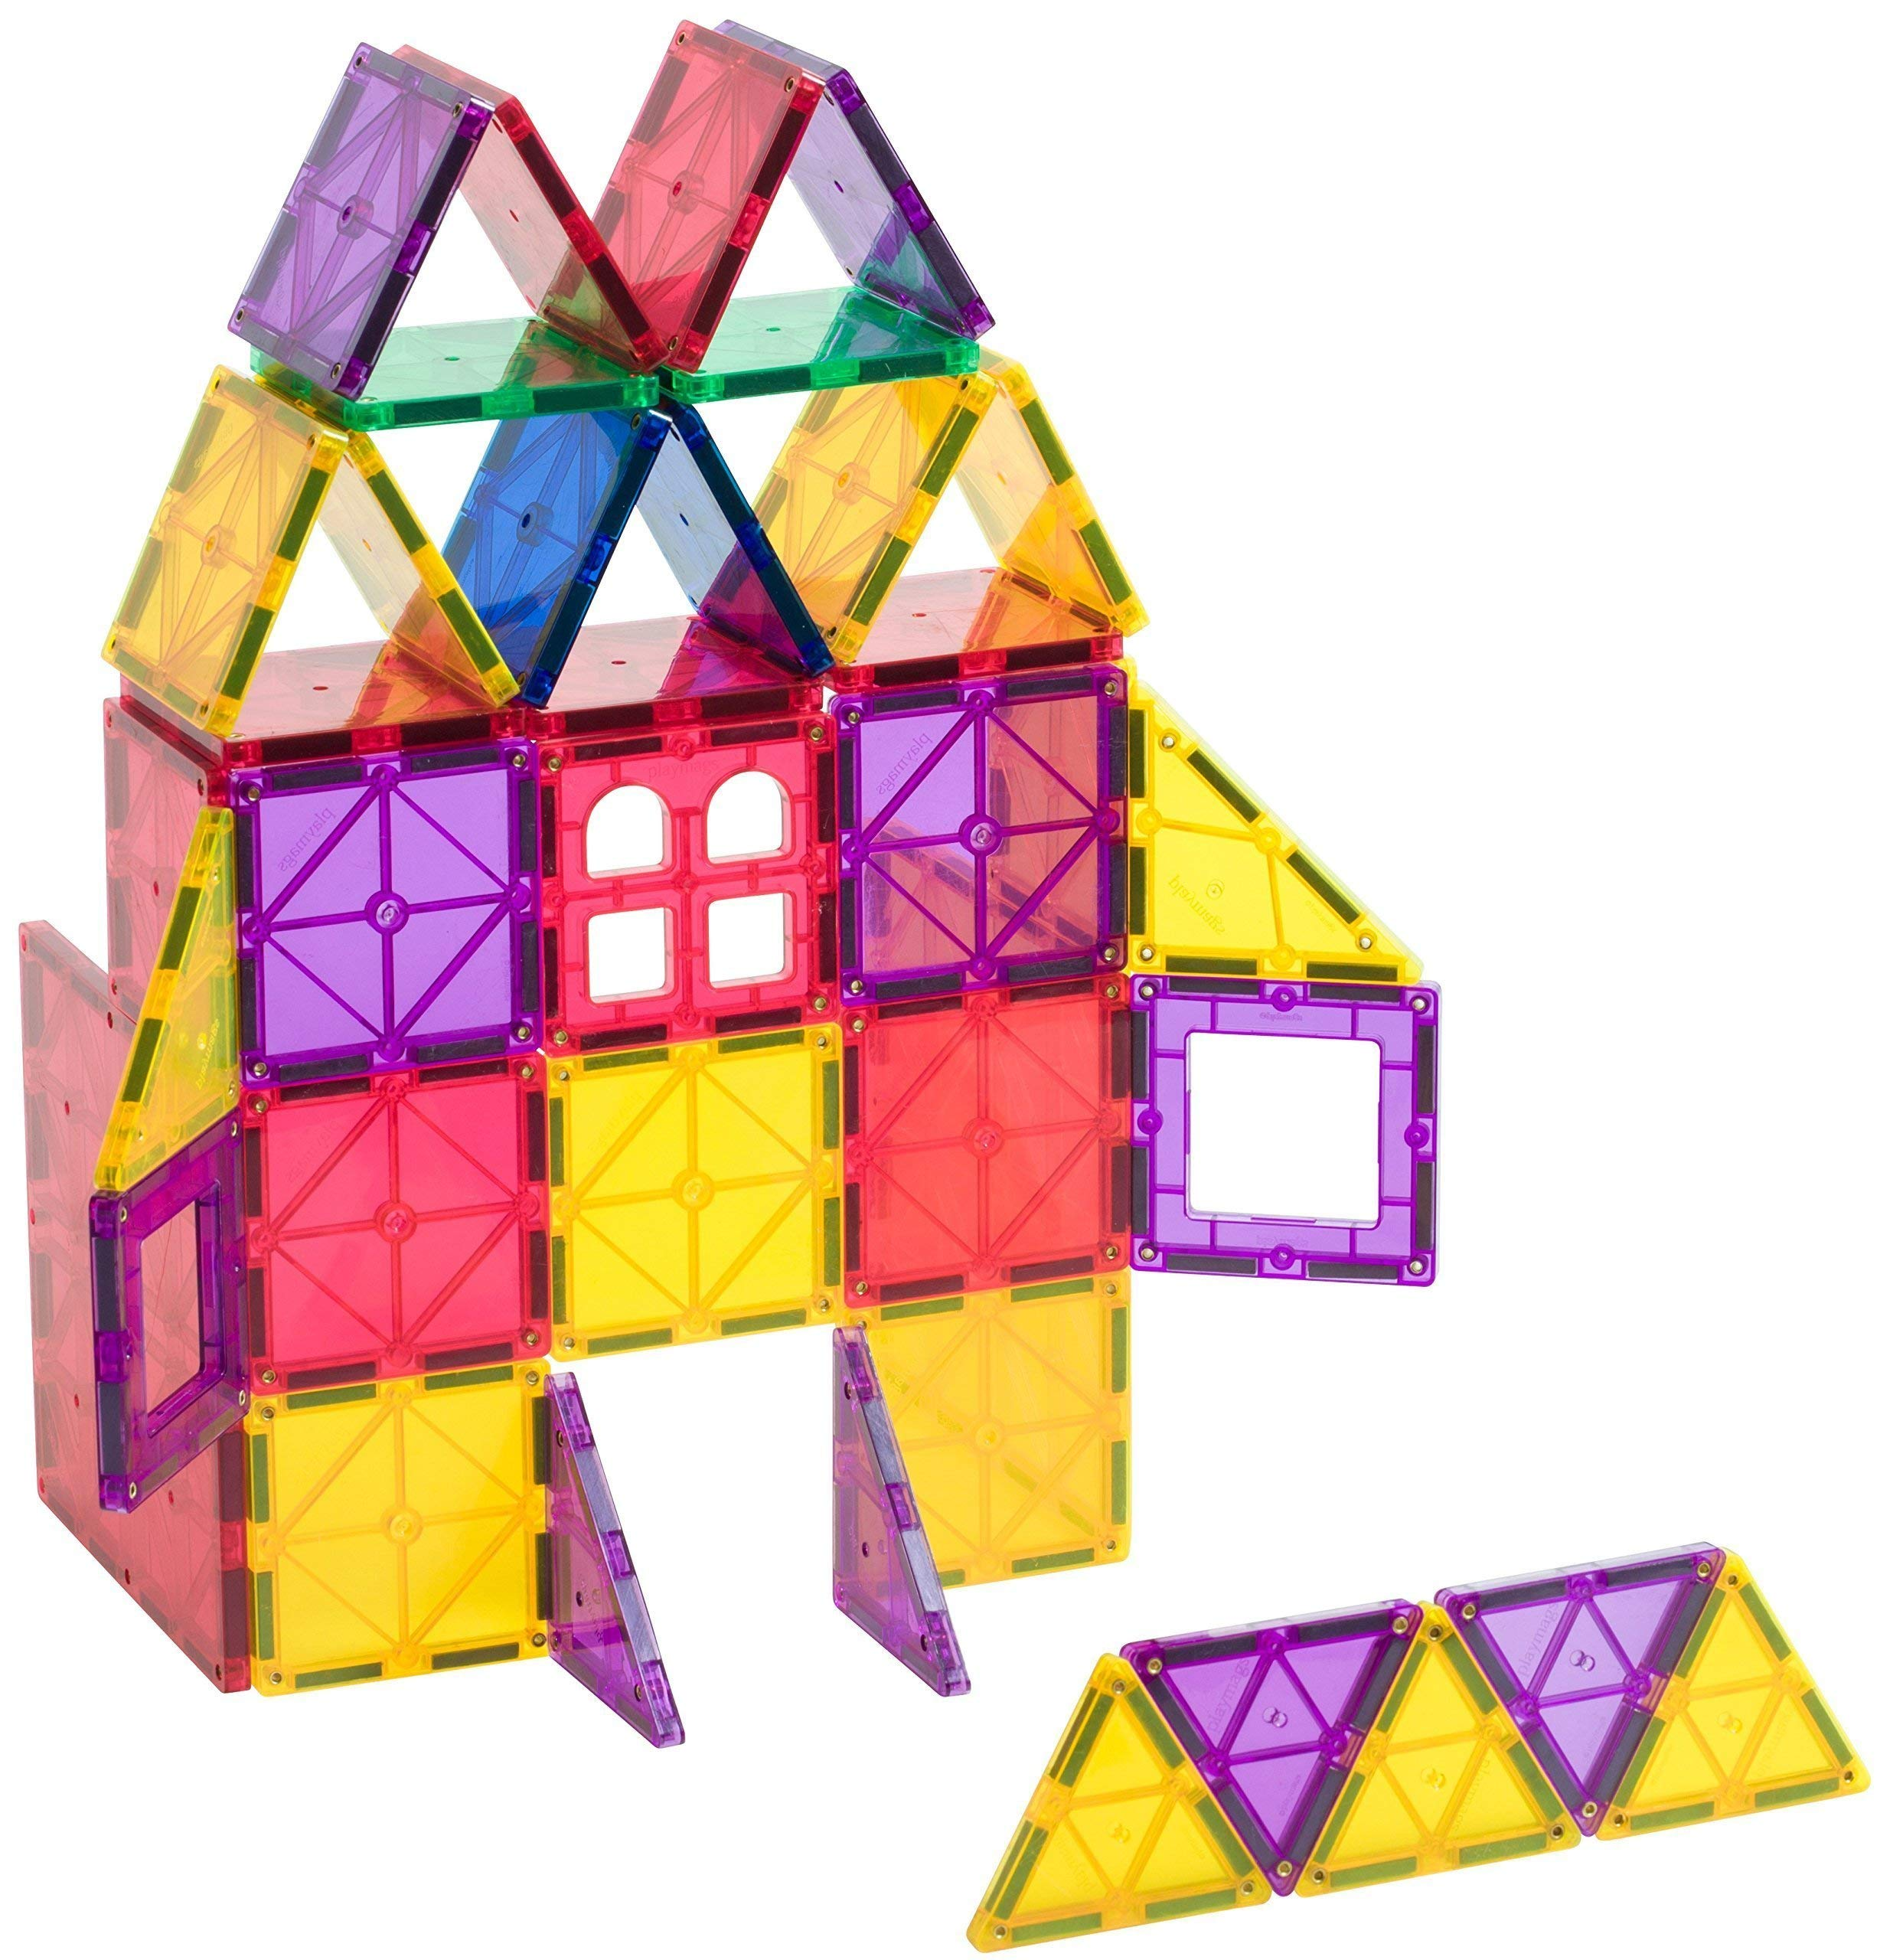 Playmags Clear Colors Magnetic Tiles Building Set 60 Piece Starter Set by Playmags (Image #1)